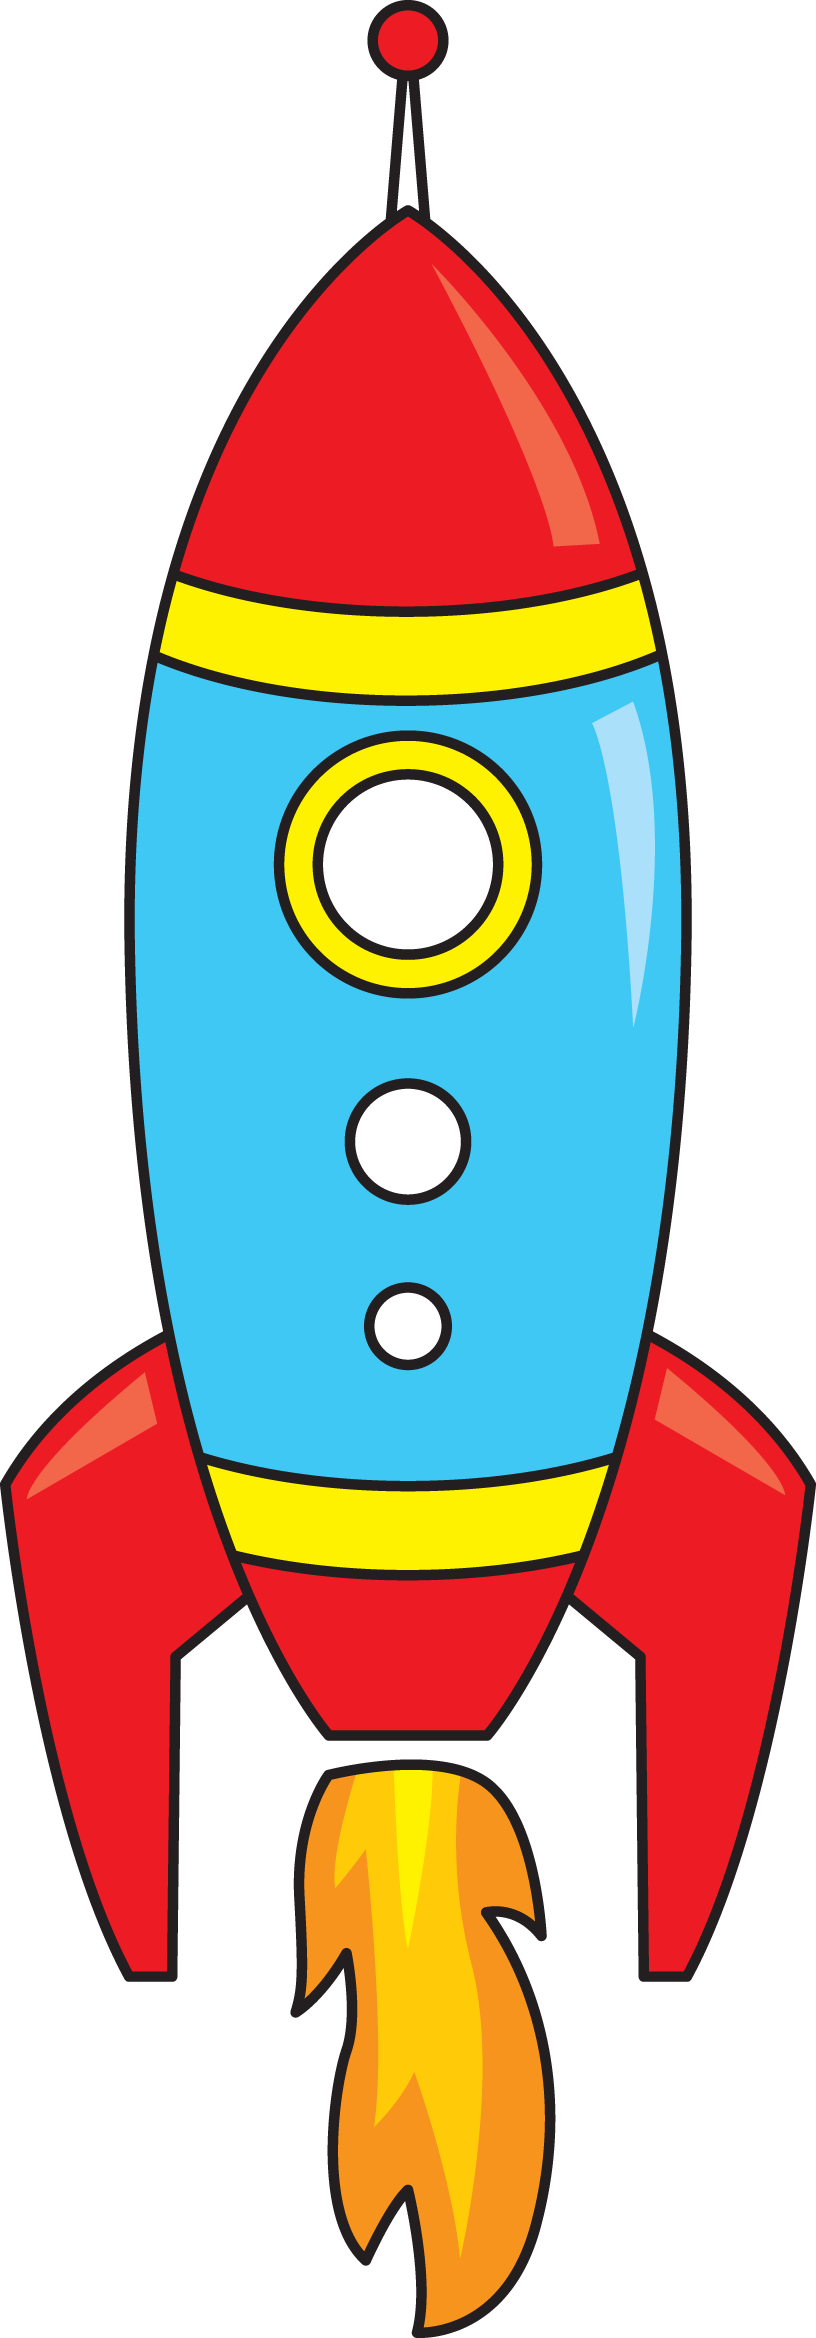 space ship clip art - photo #27